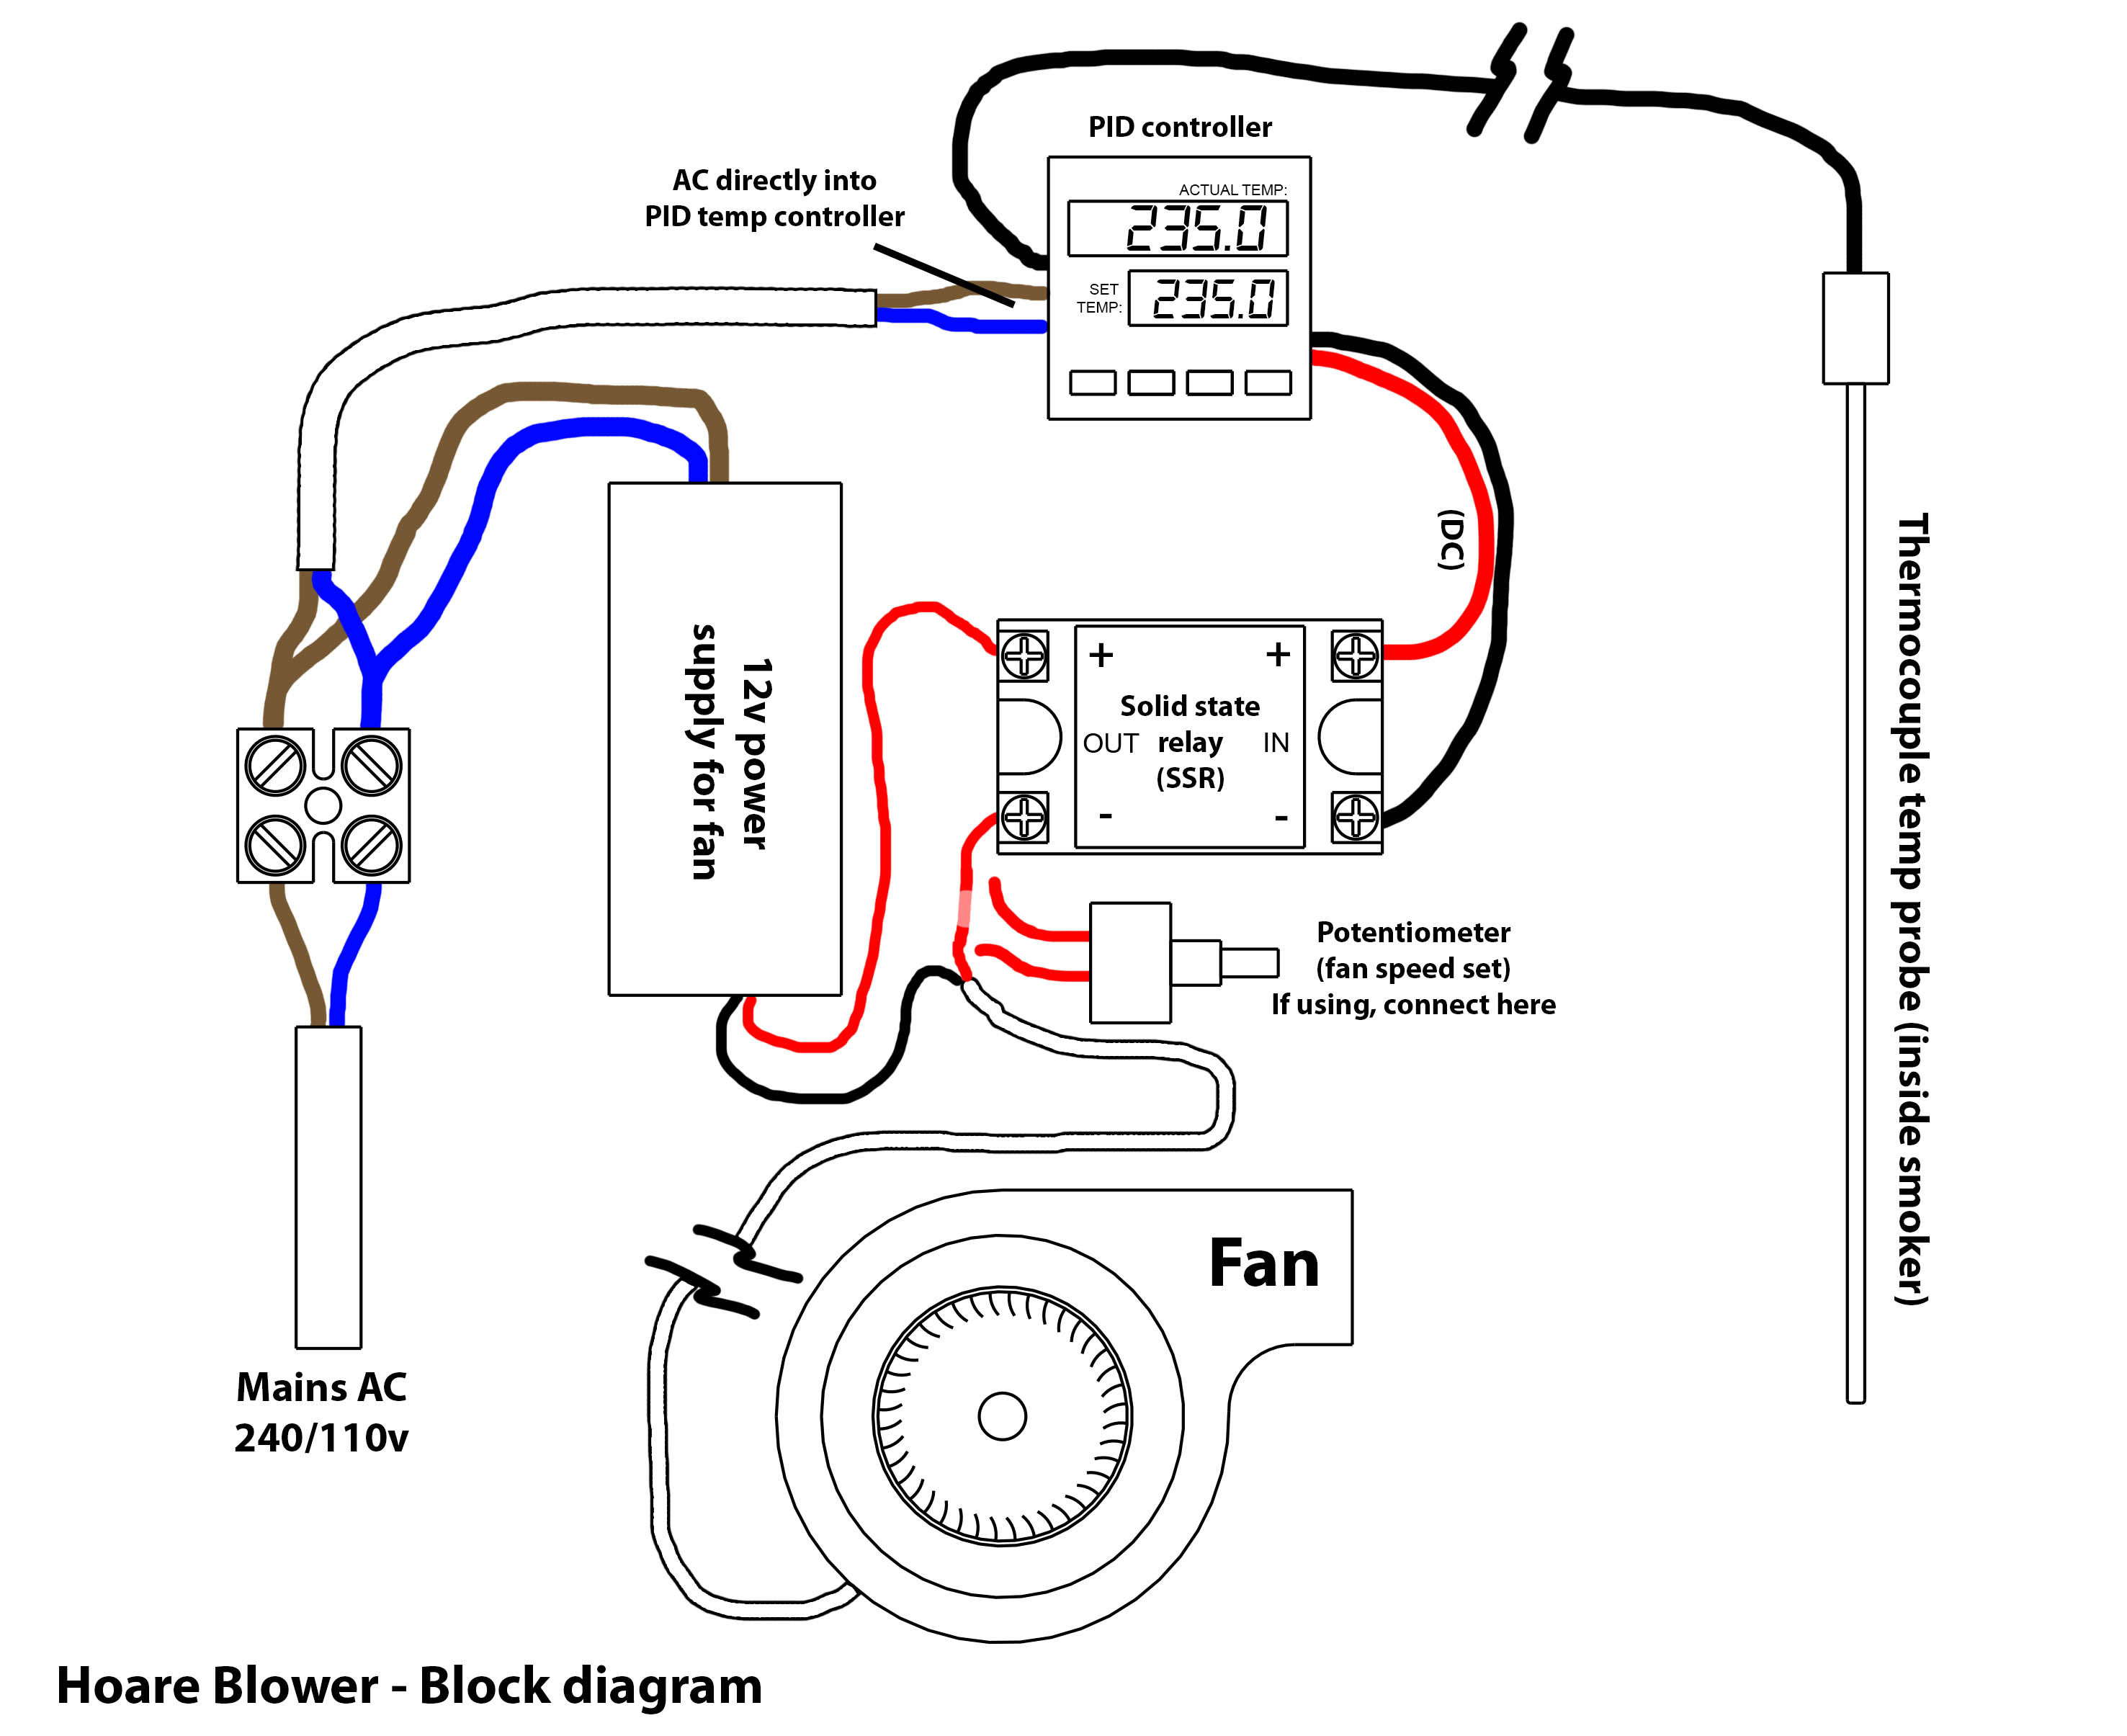 2 way electrical switch with Build Digital Forced Draft Smoker Controller on Build Digital Forced Draft Smoker Controller likewise Ddec Iii Wiring Diagram besides Wiring A Receptacle With Lights Wiring Diagrams together with Index2 besides Driving A High Power 200ma Led With A Gpio And Npn Transistor.